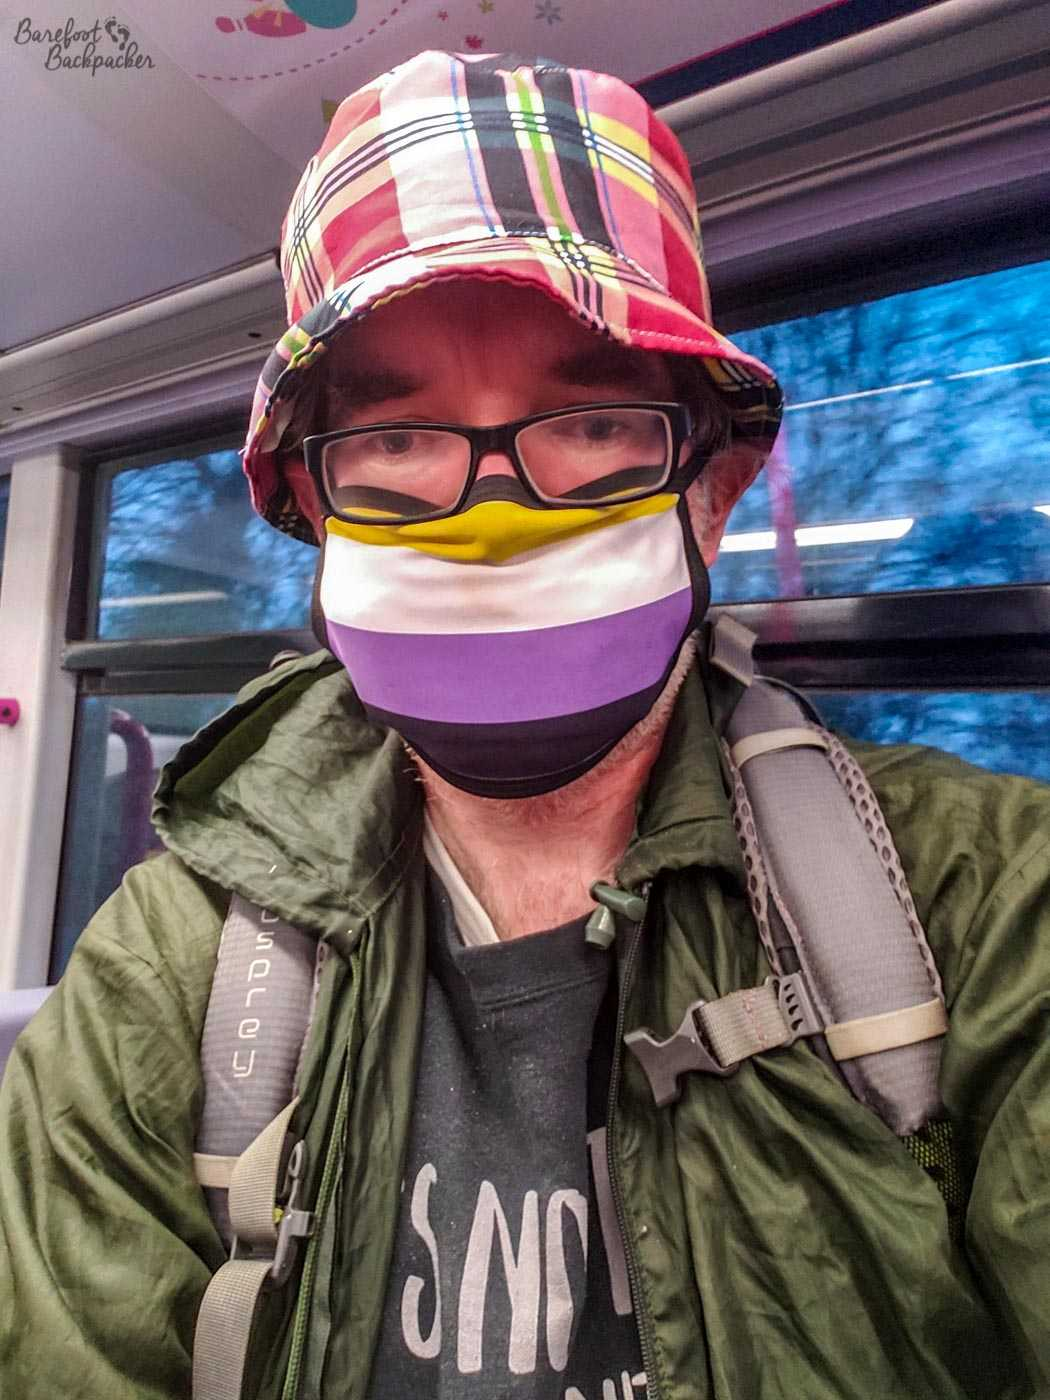 Man (though YMMV on that) sitting on a tram in front of a window. They're wearing a plaid hat (mostly red), a green cagoule, a backpack (full of shopping but you don't need to know that), and a face-mask with yellow, white, purple, and black stripes.